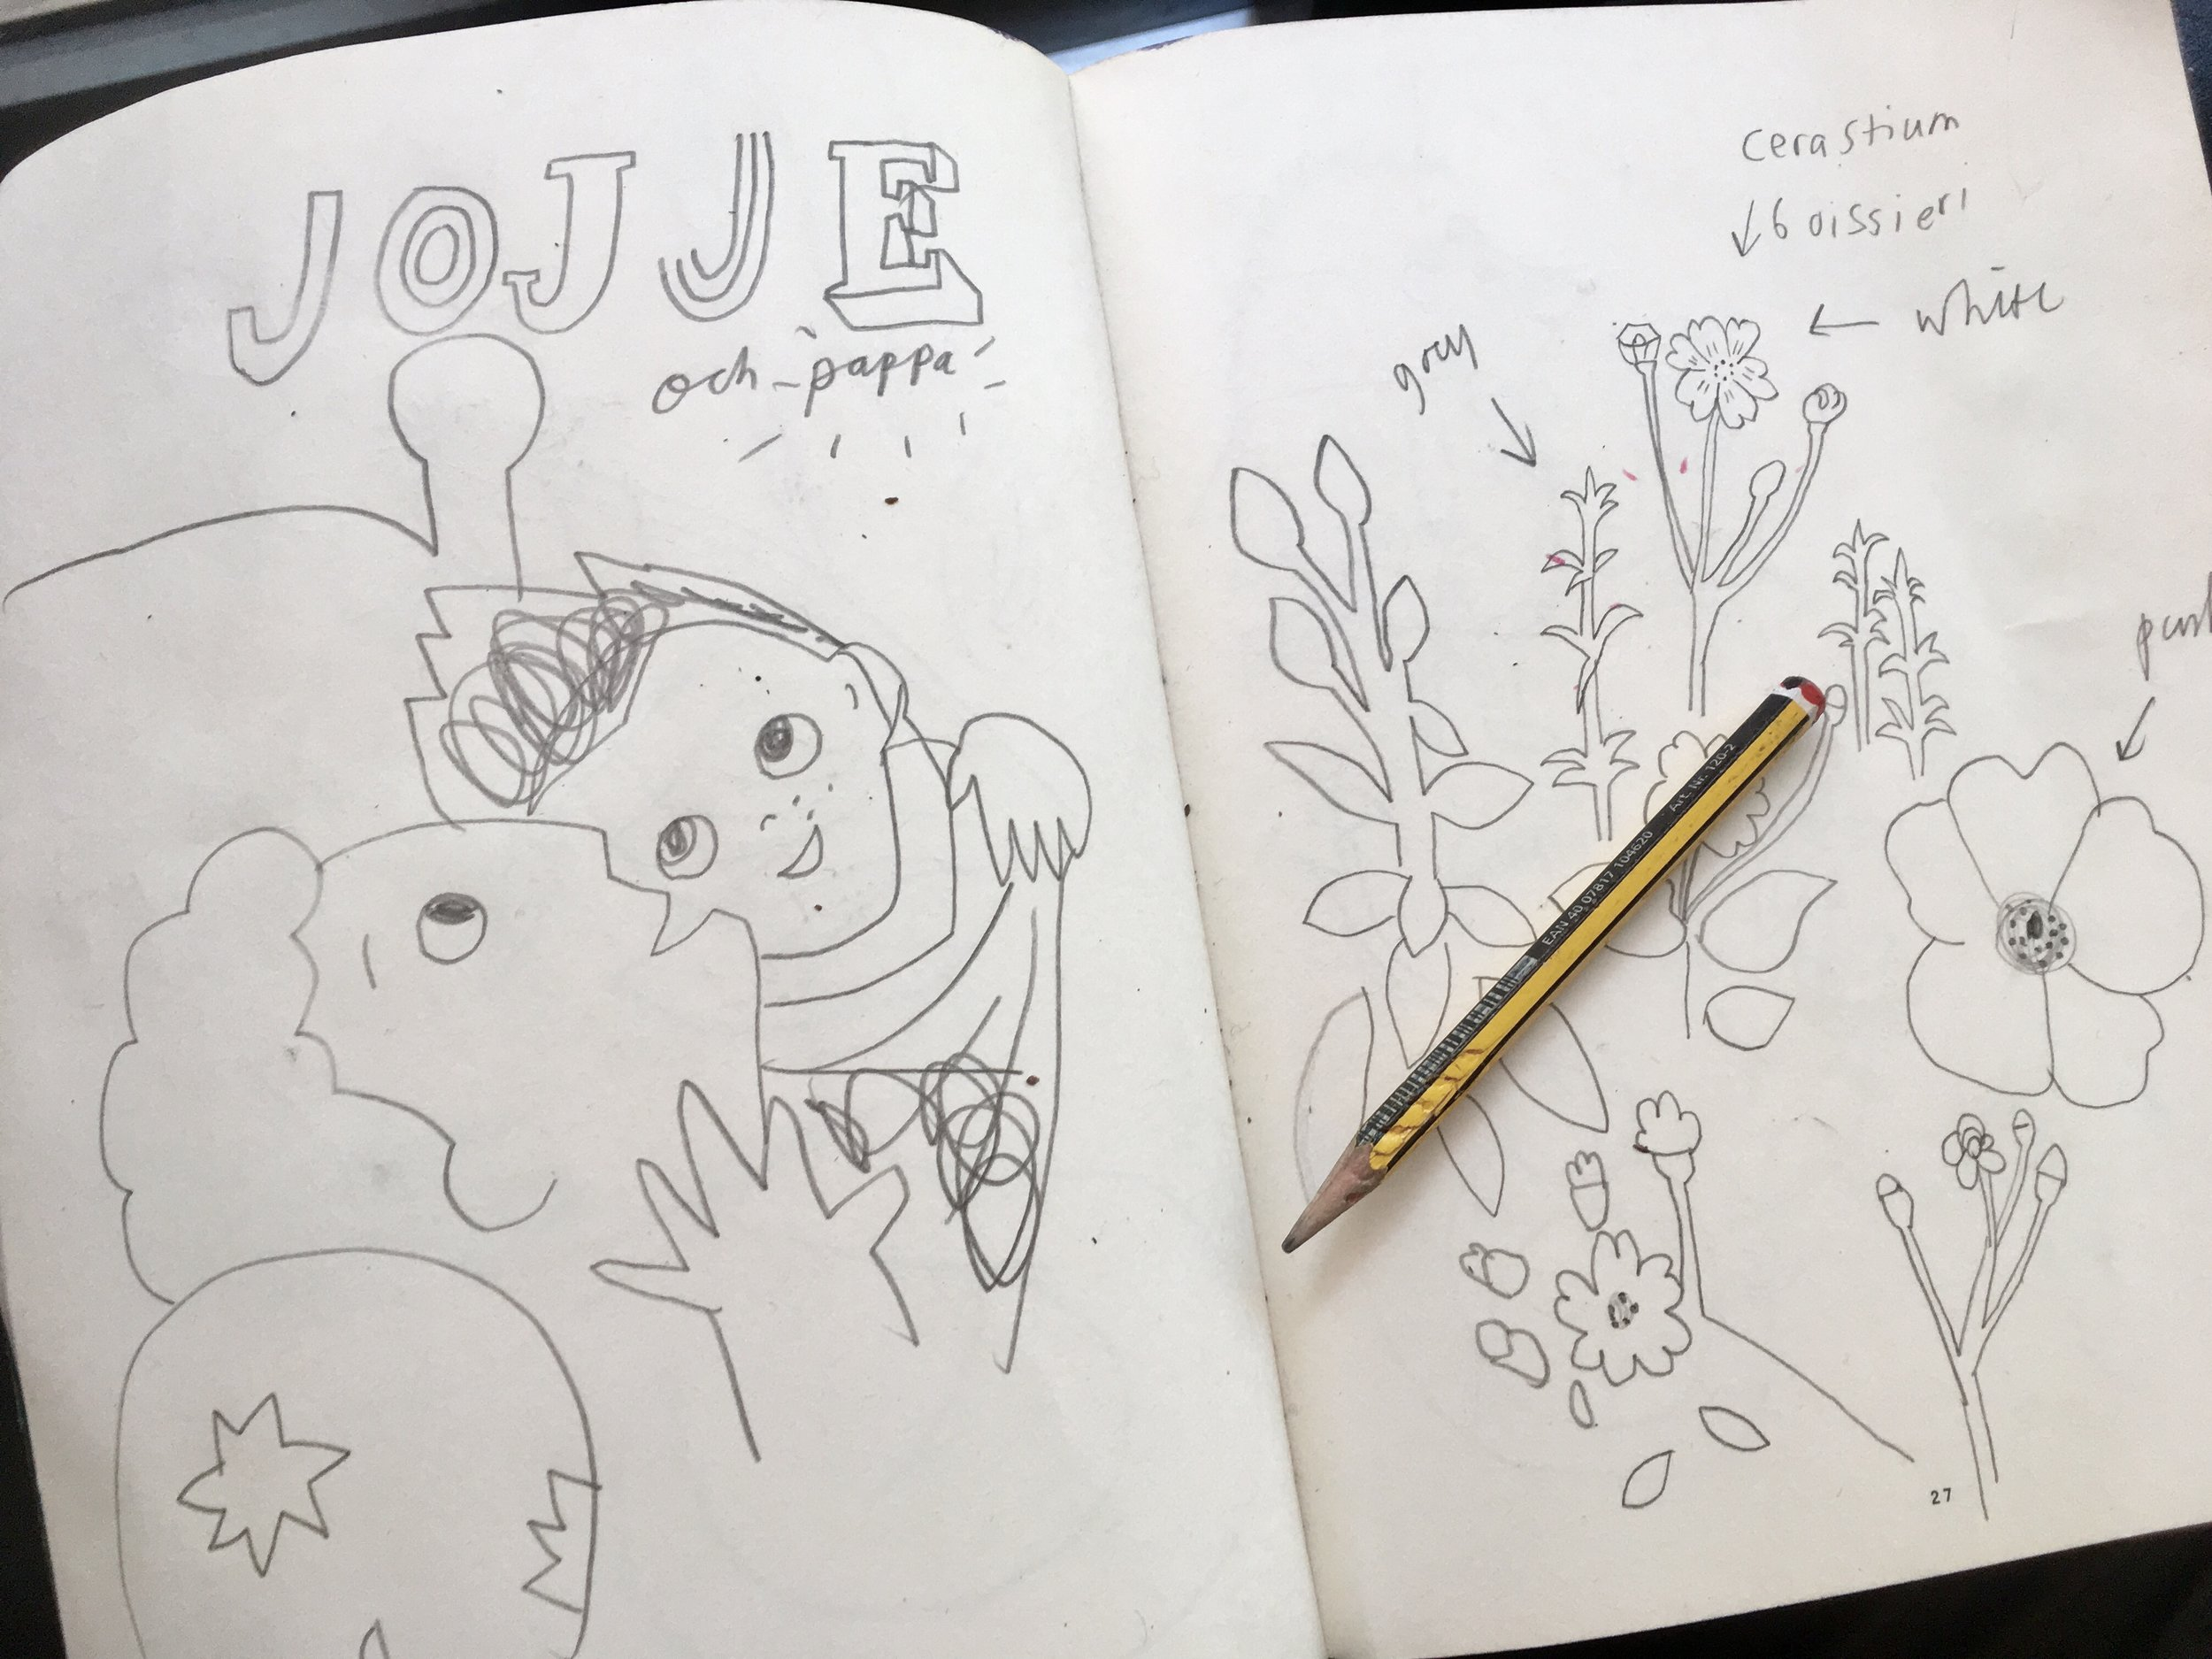 JOJJE - Ellen Karlsson's book illustrated by I, out now, in Swedish Shops...Read more here